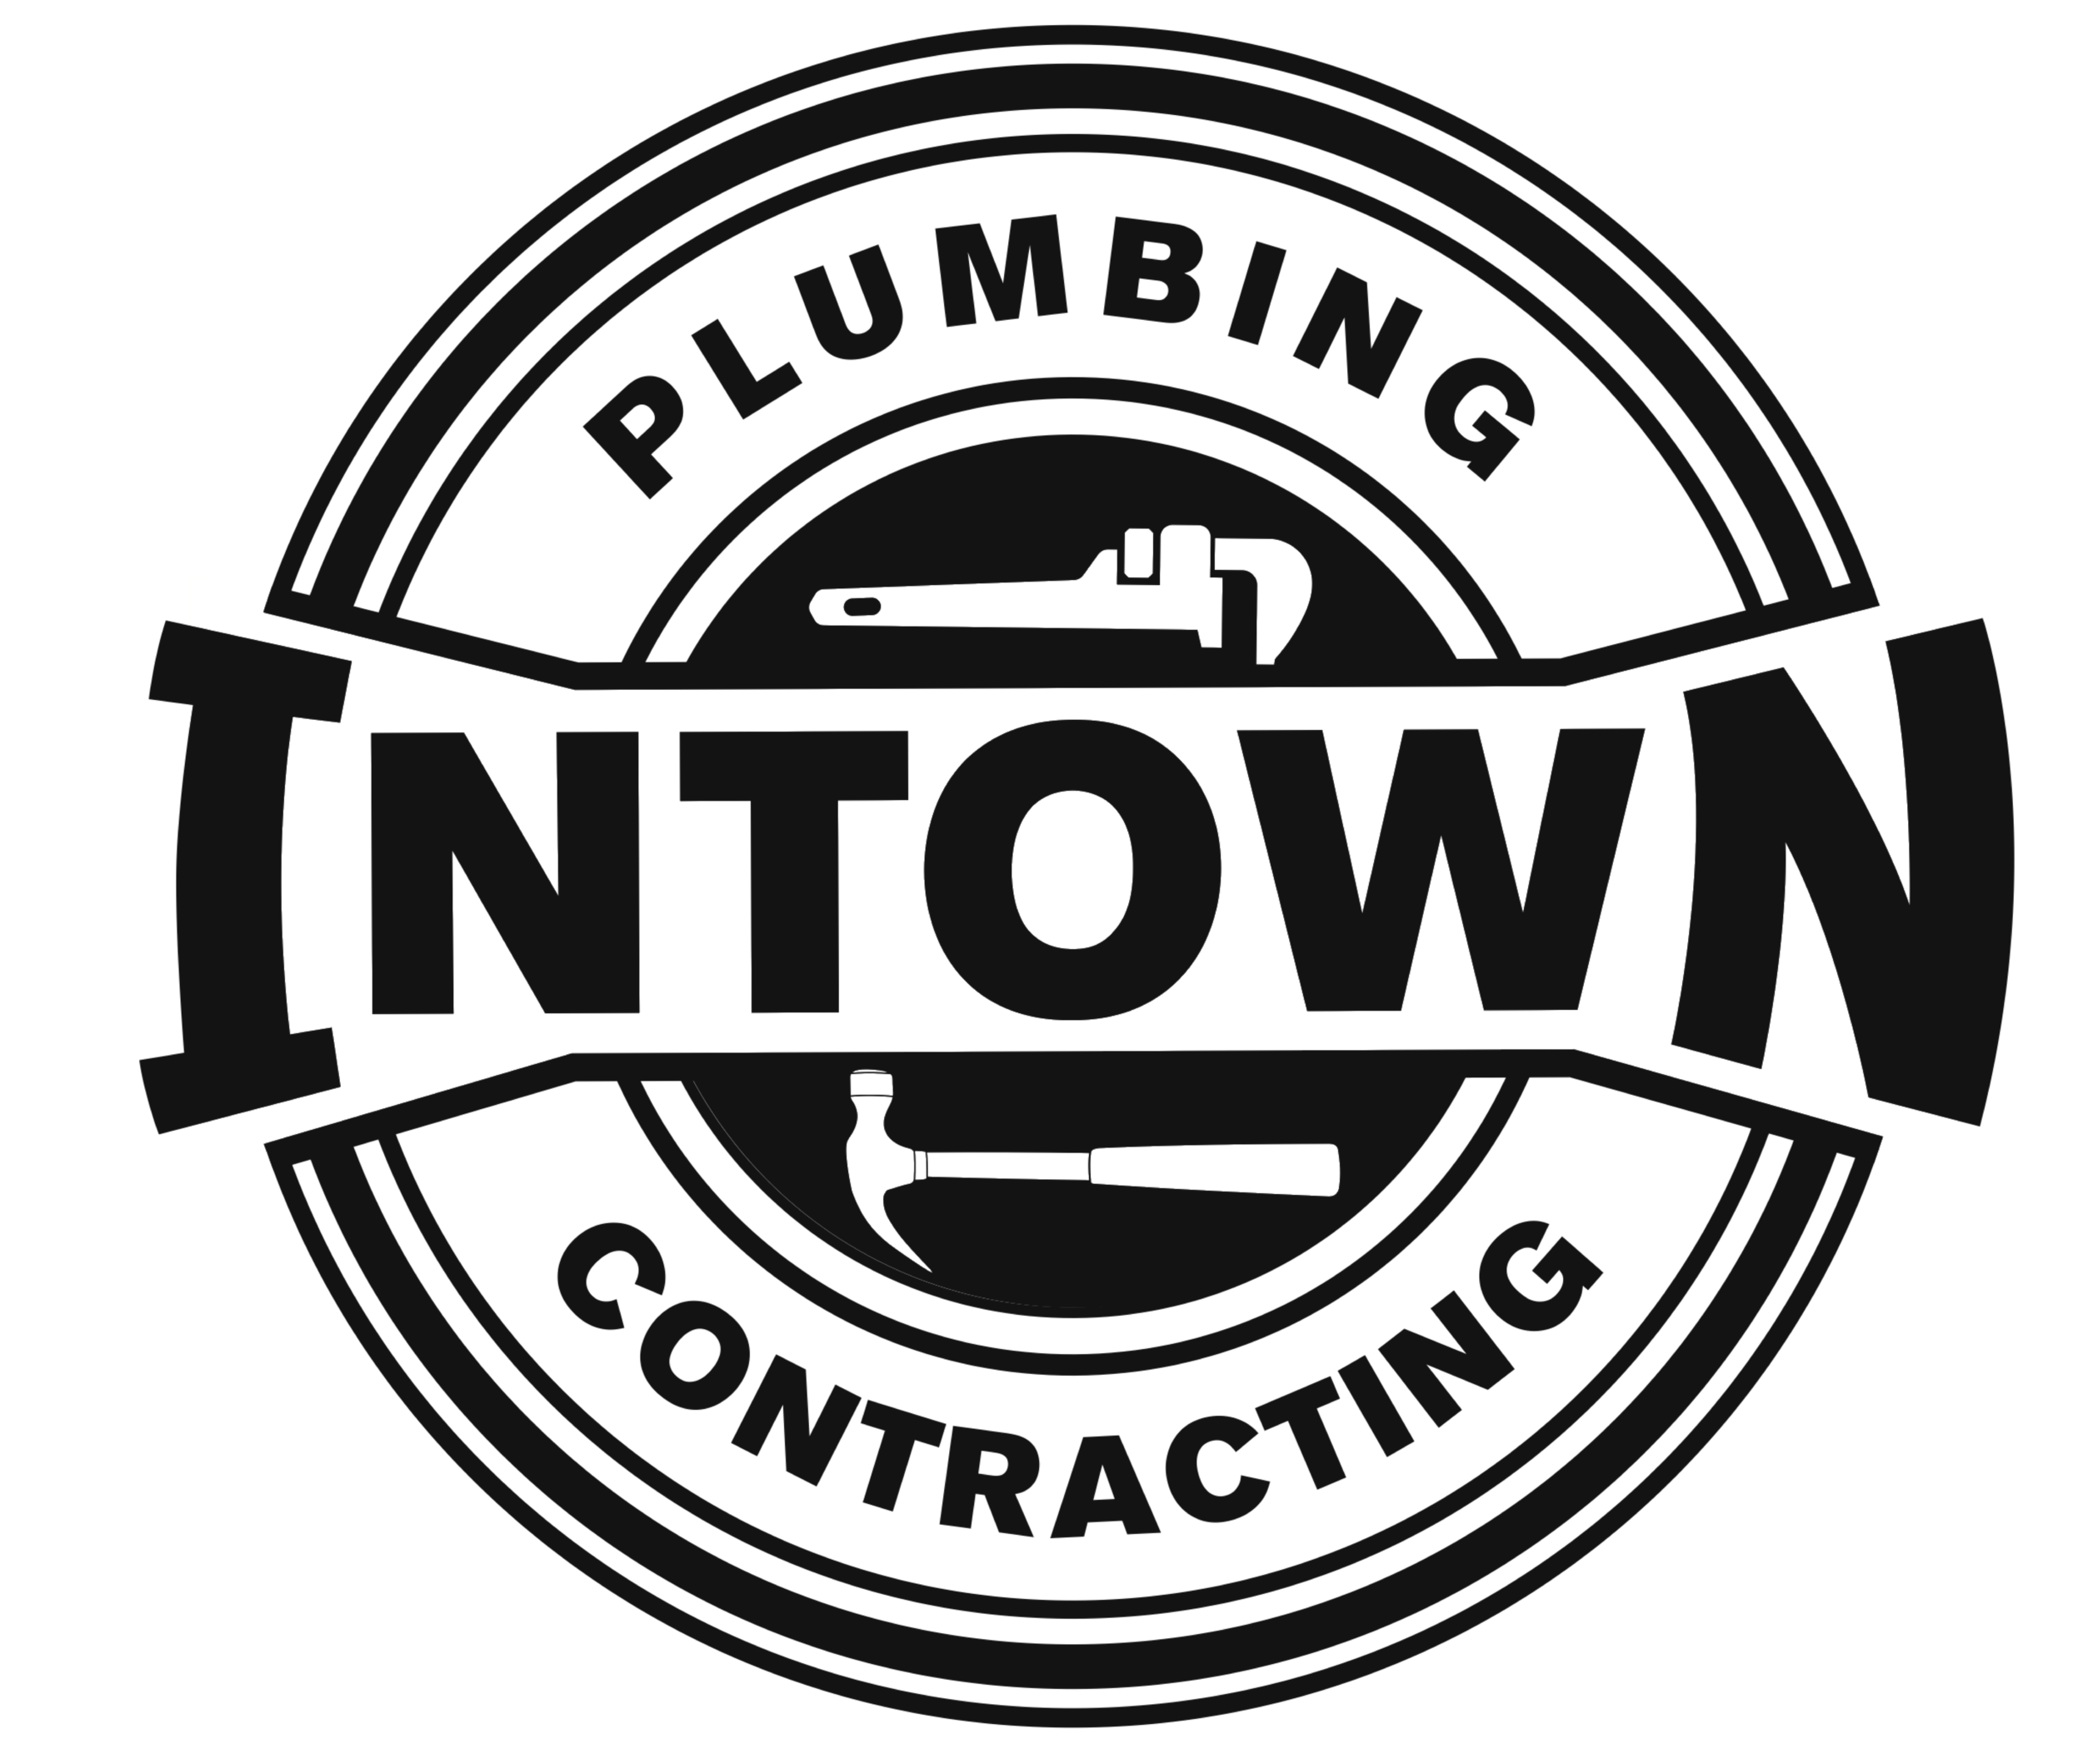 Email: intown.plumb@gmail.com  Phone: 1-416-576-4556 or 705-796-7097